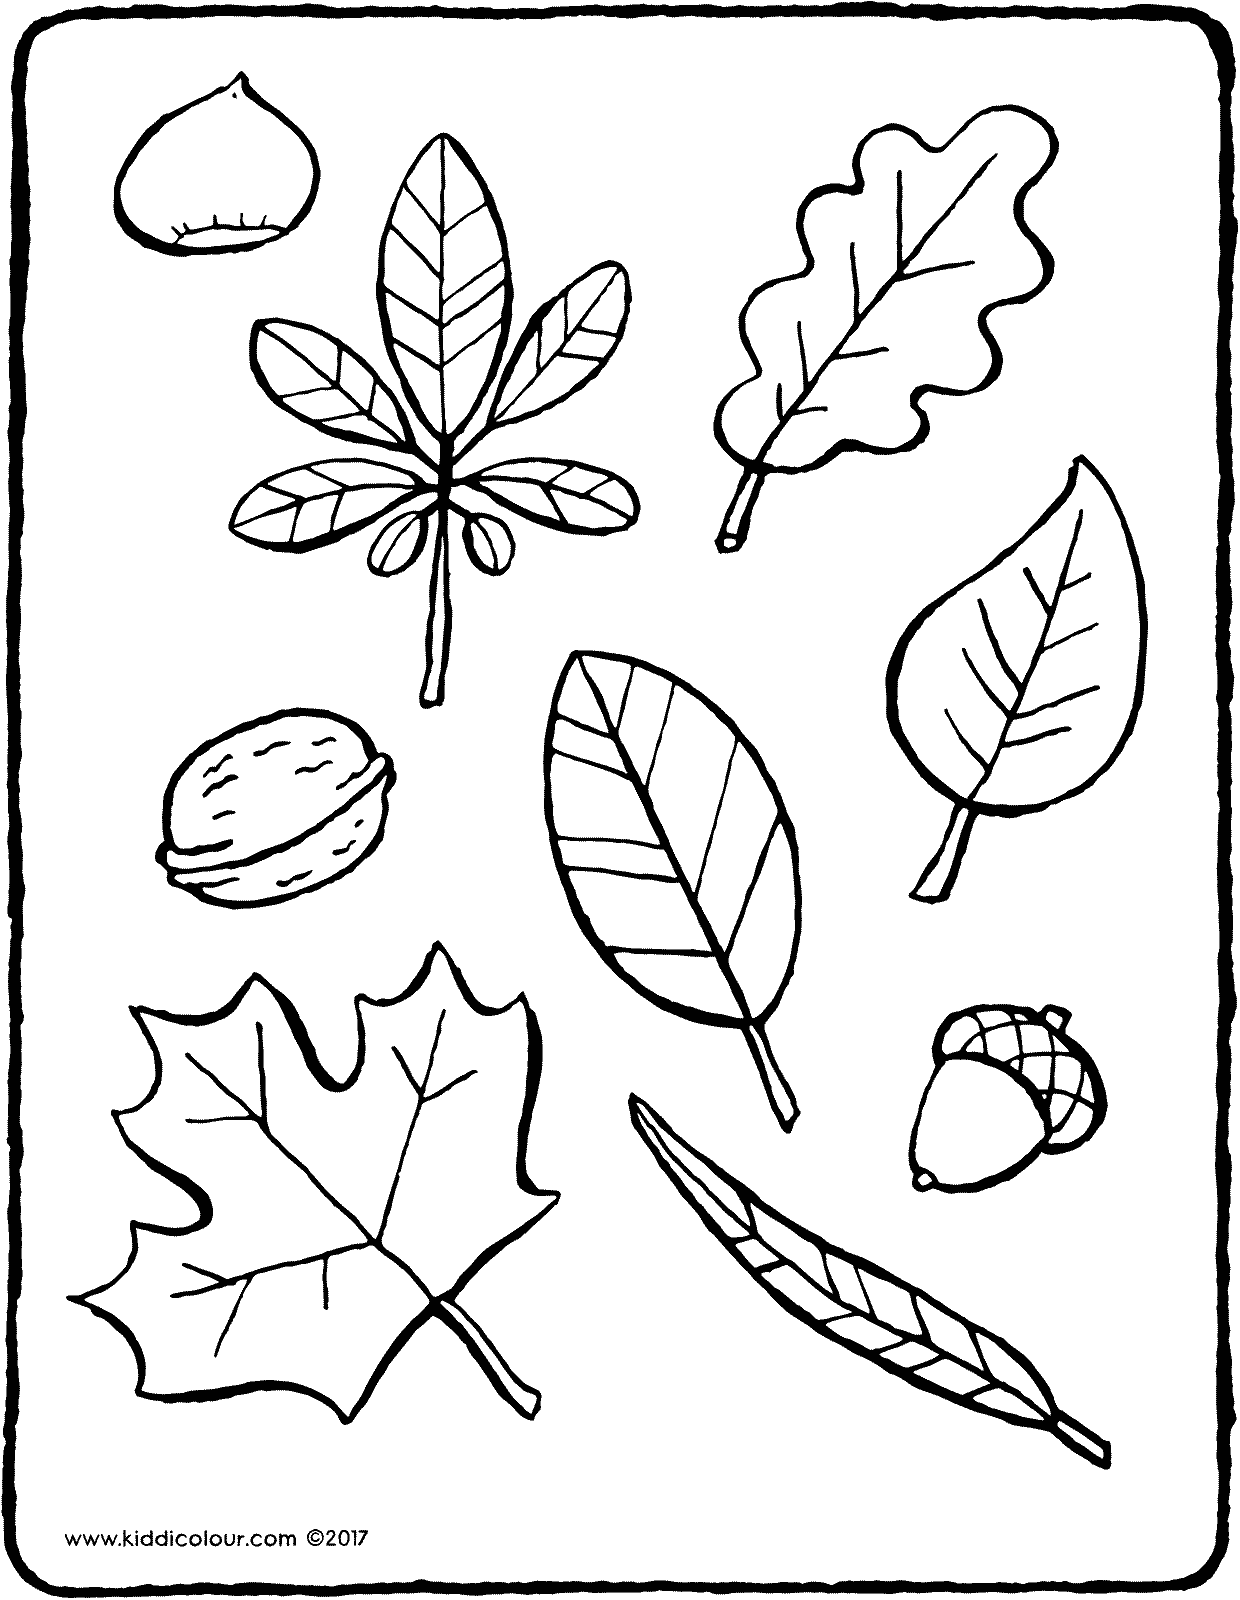 autumn leaves colouring page page drawing picture 01V